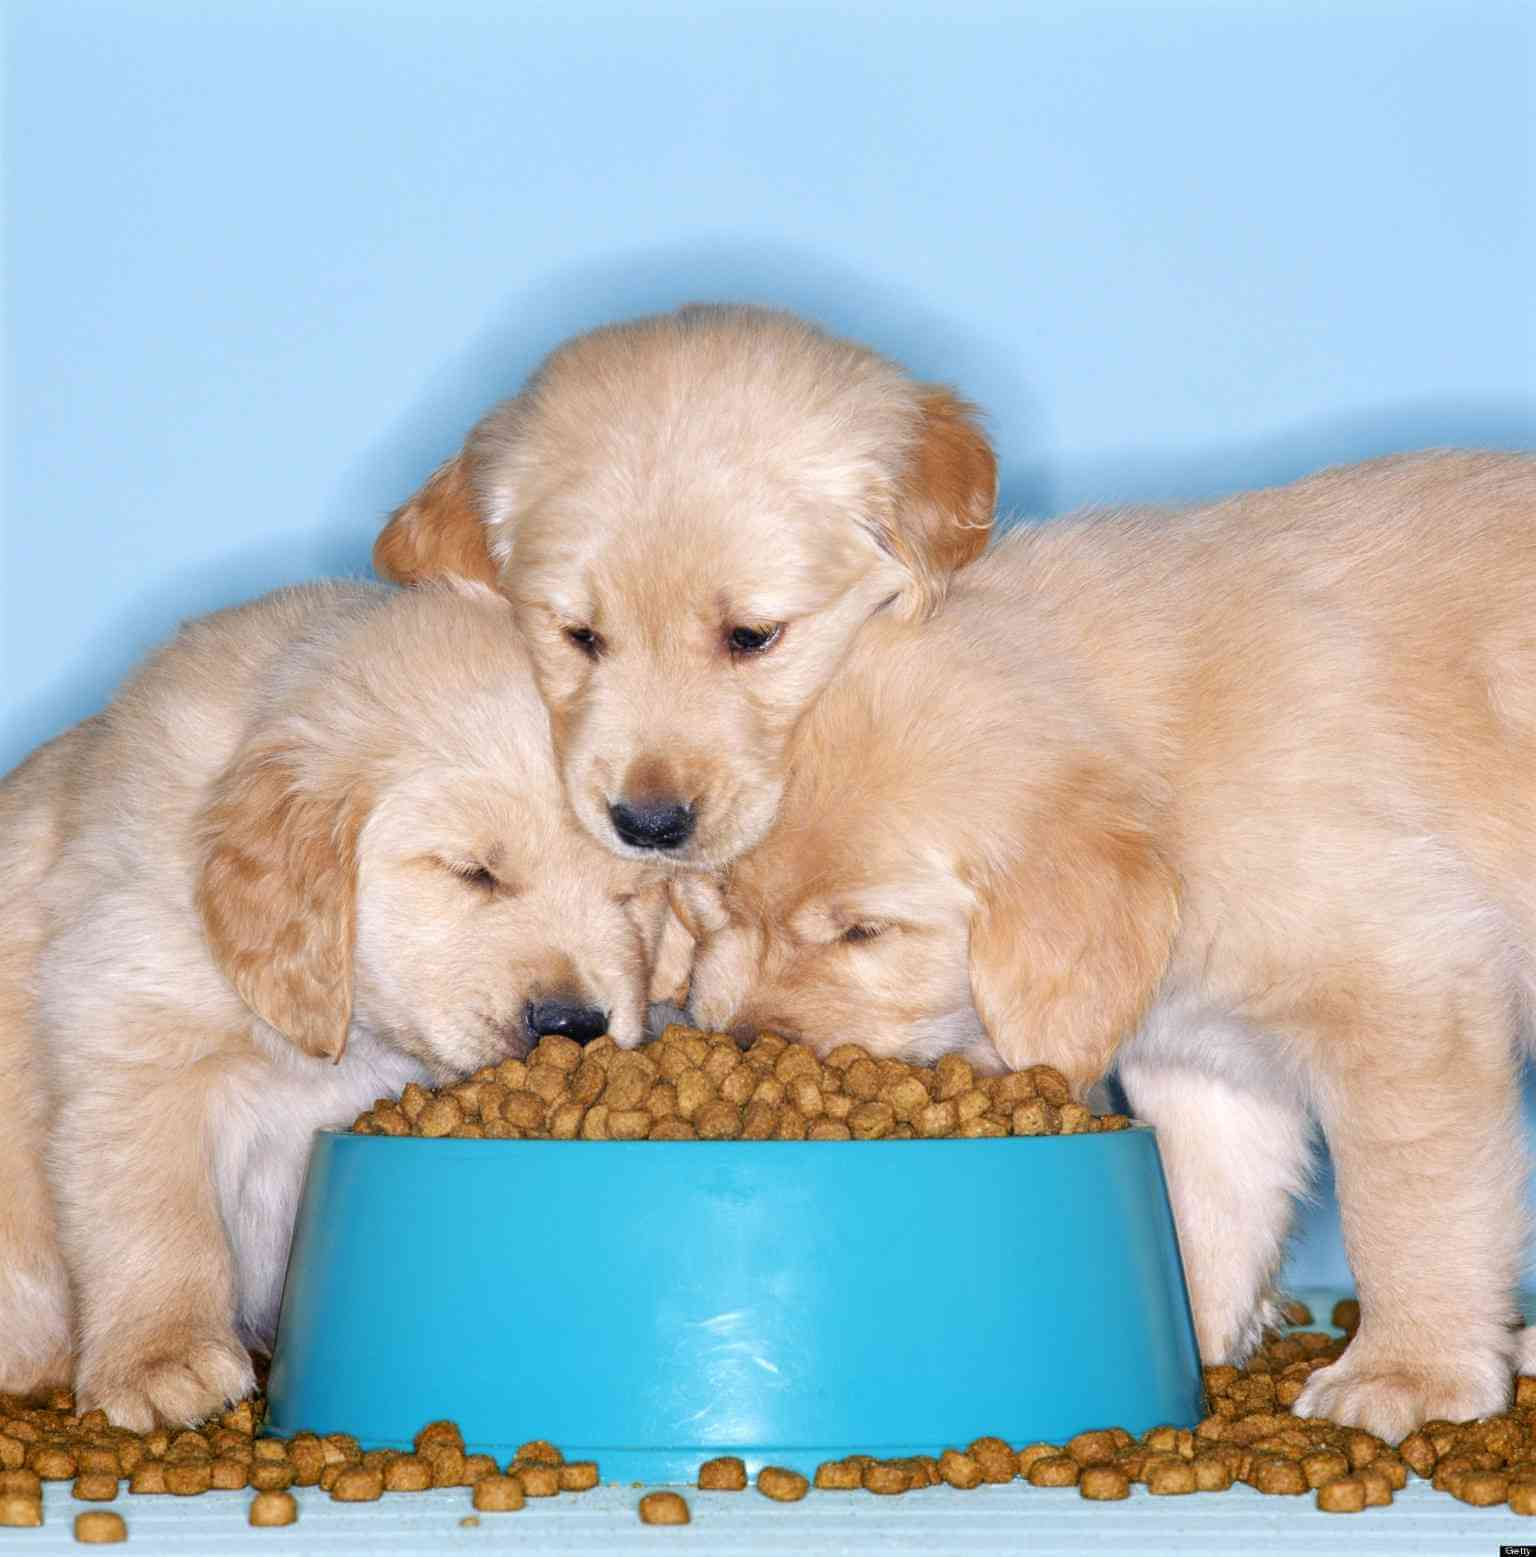 Puppies eating dog food